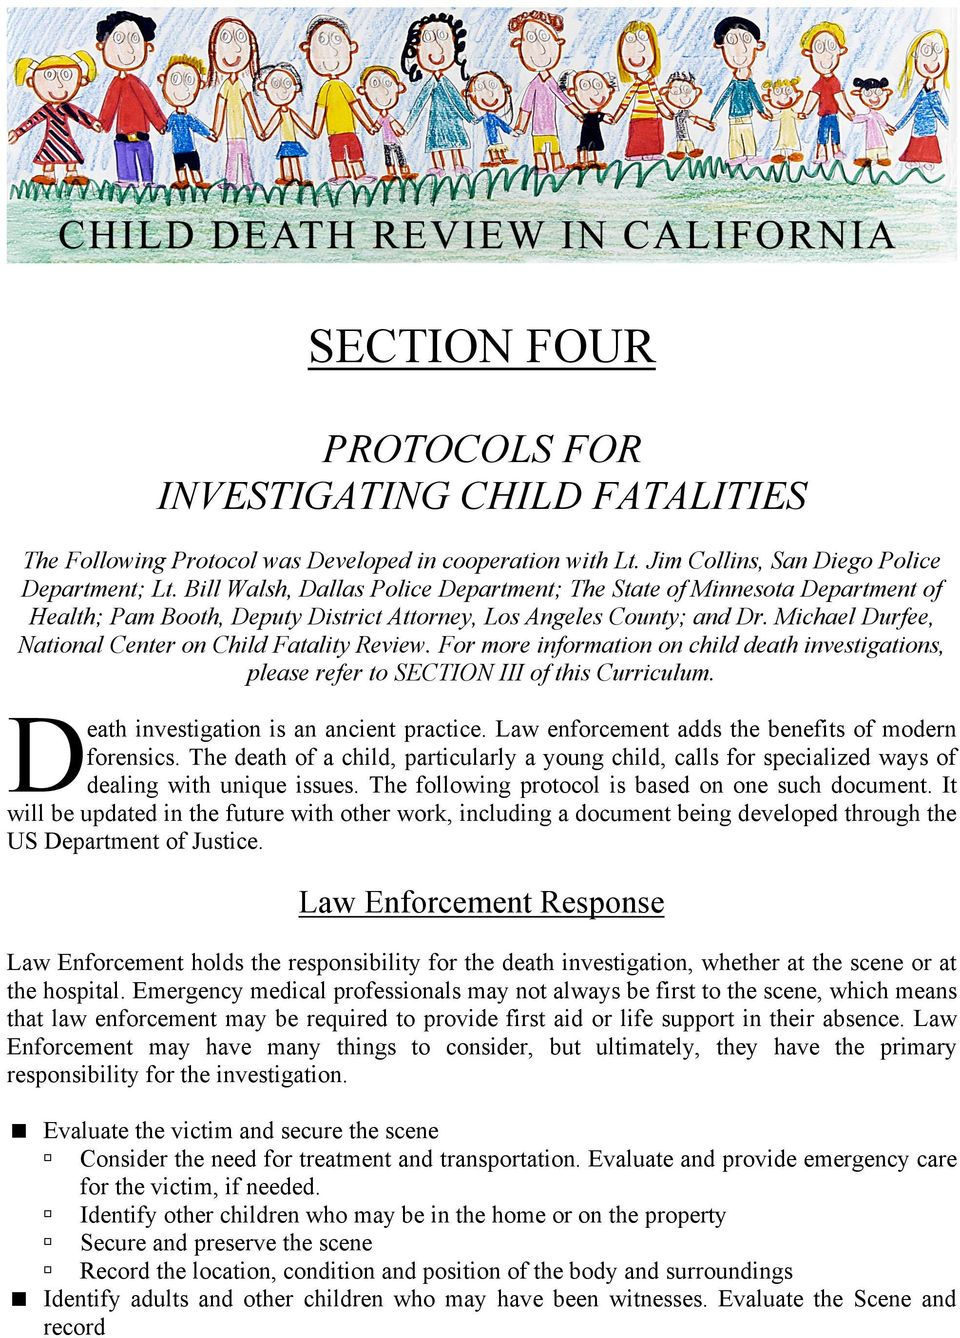 Michael Durfee, National Center on Child Fatality Review. For more information on child death investigations, please refer to SECTION III of this Curriculum.